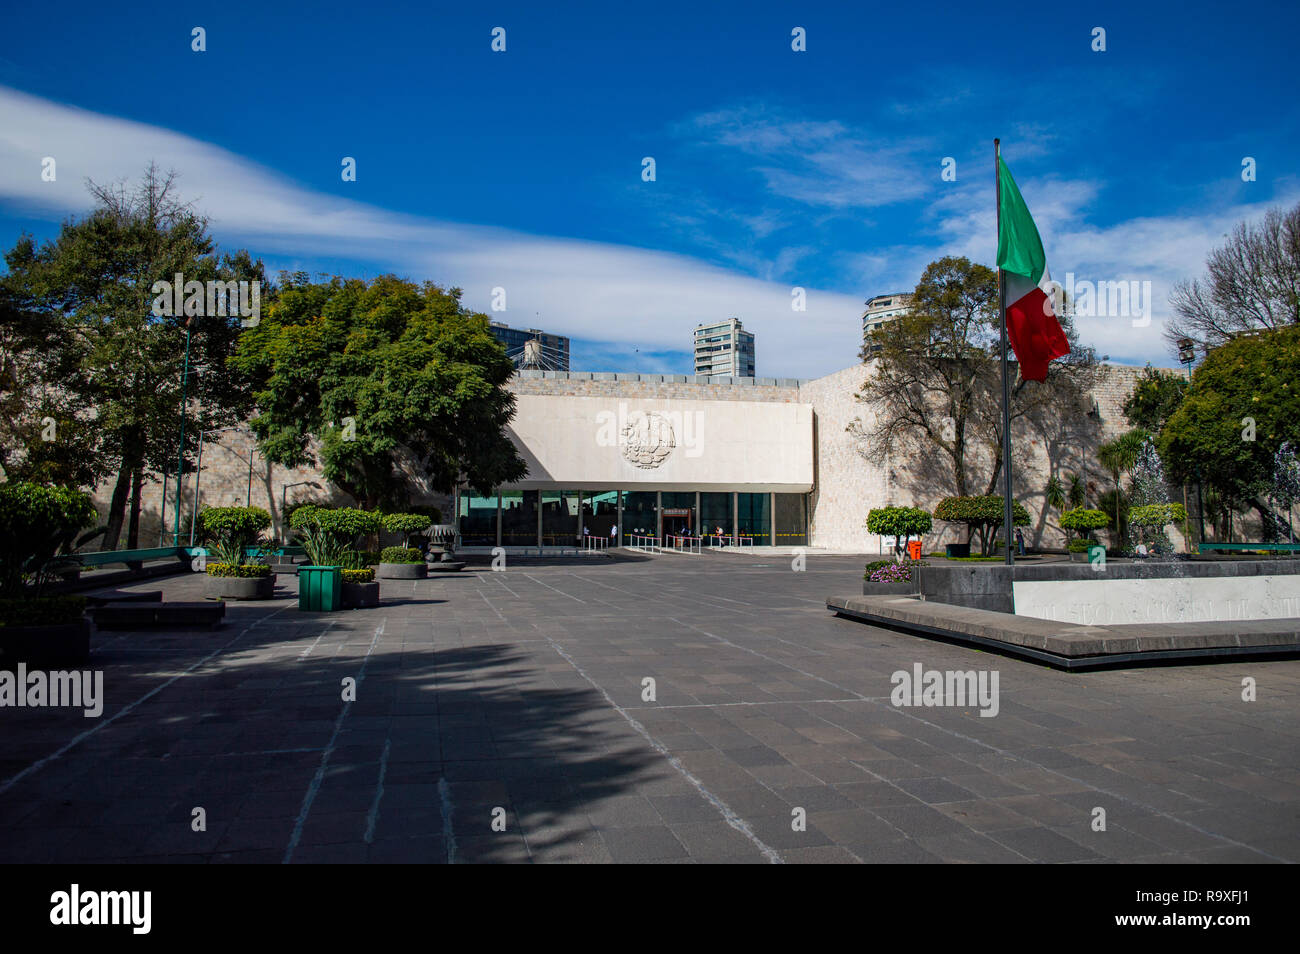 The entrance to the National Museum of Anthropology in Mexico City, Mexico - Stock Image